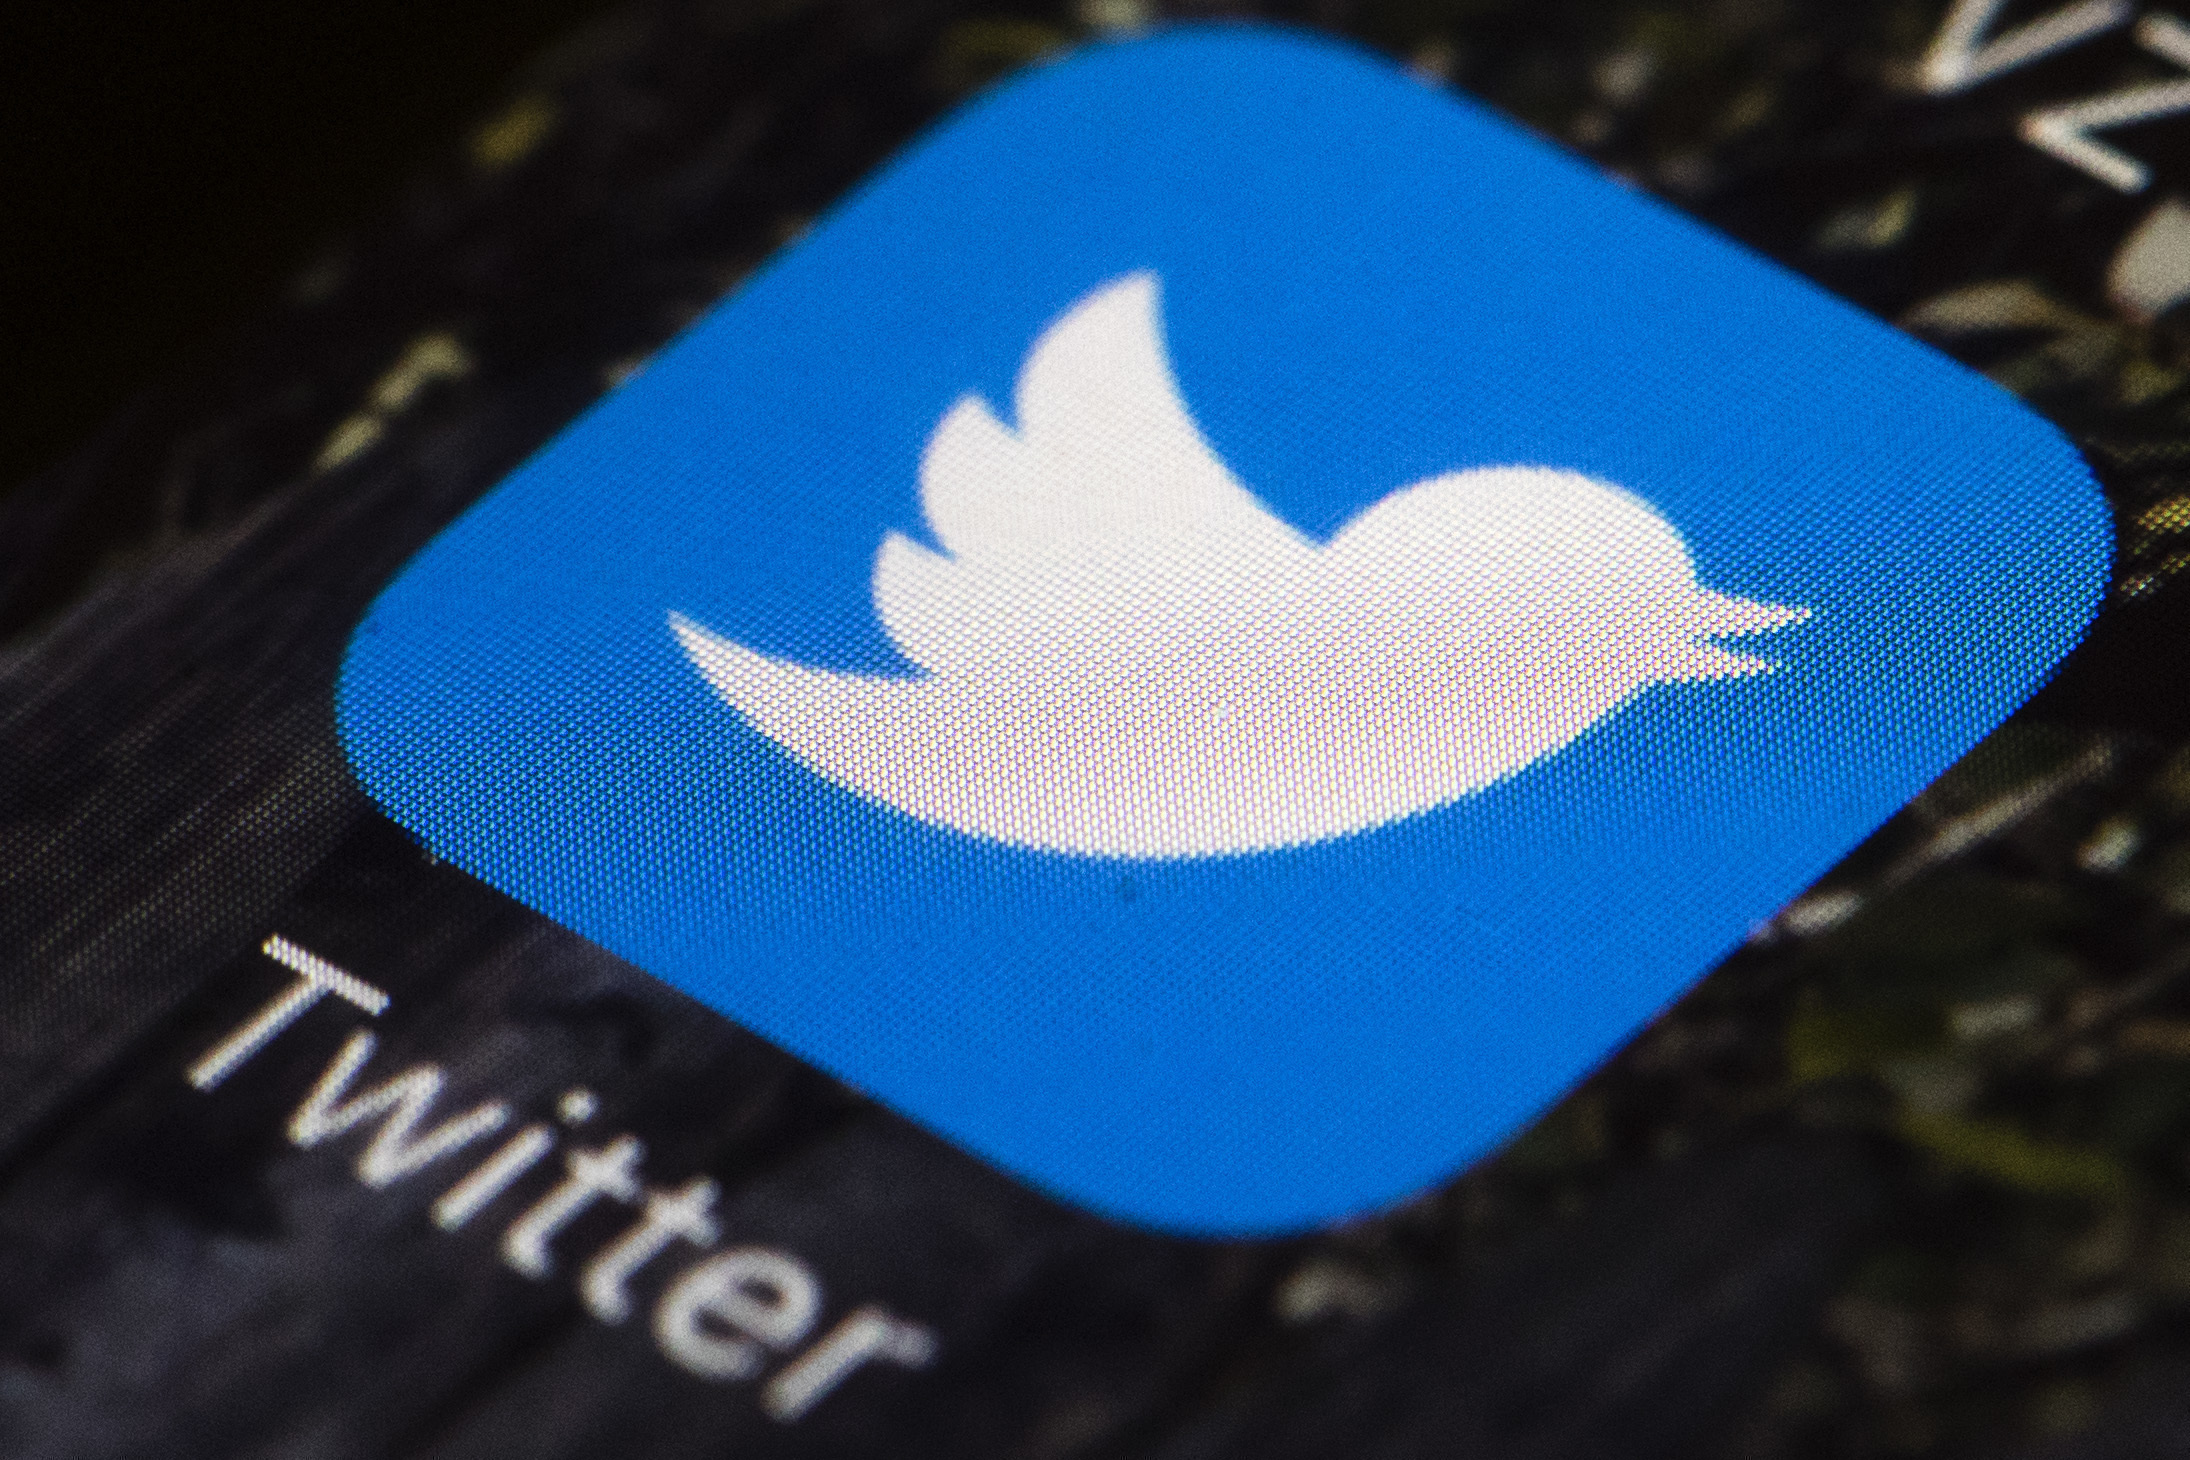 This April 26, 2017, file photo shows the Twitter app icon on a mobile phone in Philadelphia. A tech-focused civil liberties group on Tuesday, June 2, 2020, sued to block President Donald Trump's executive order that seeks to regulate social media, saying it violates the First Amendment and chills speech.